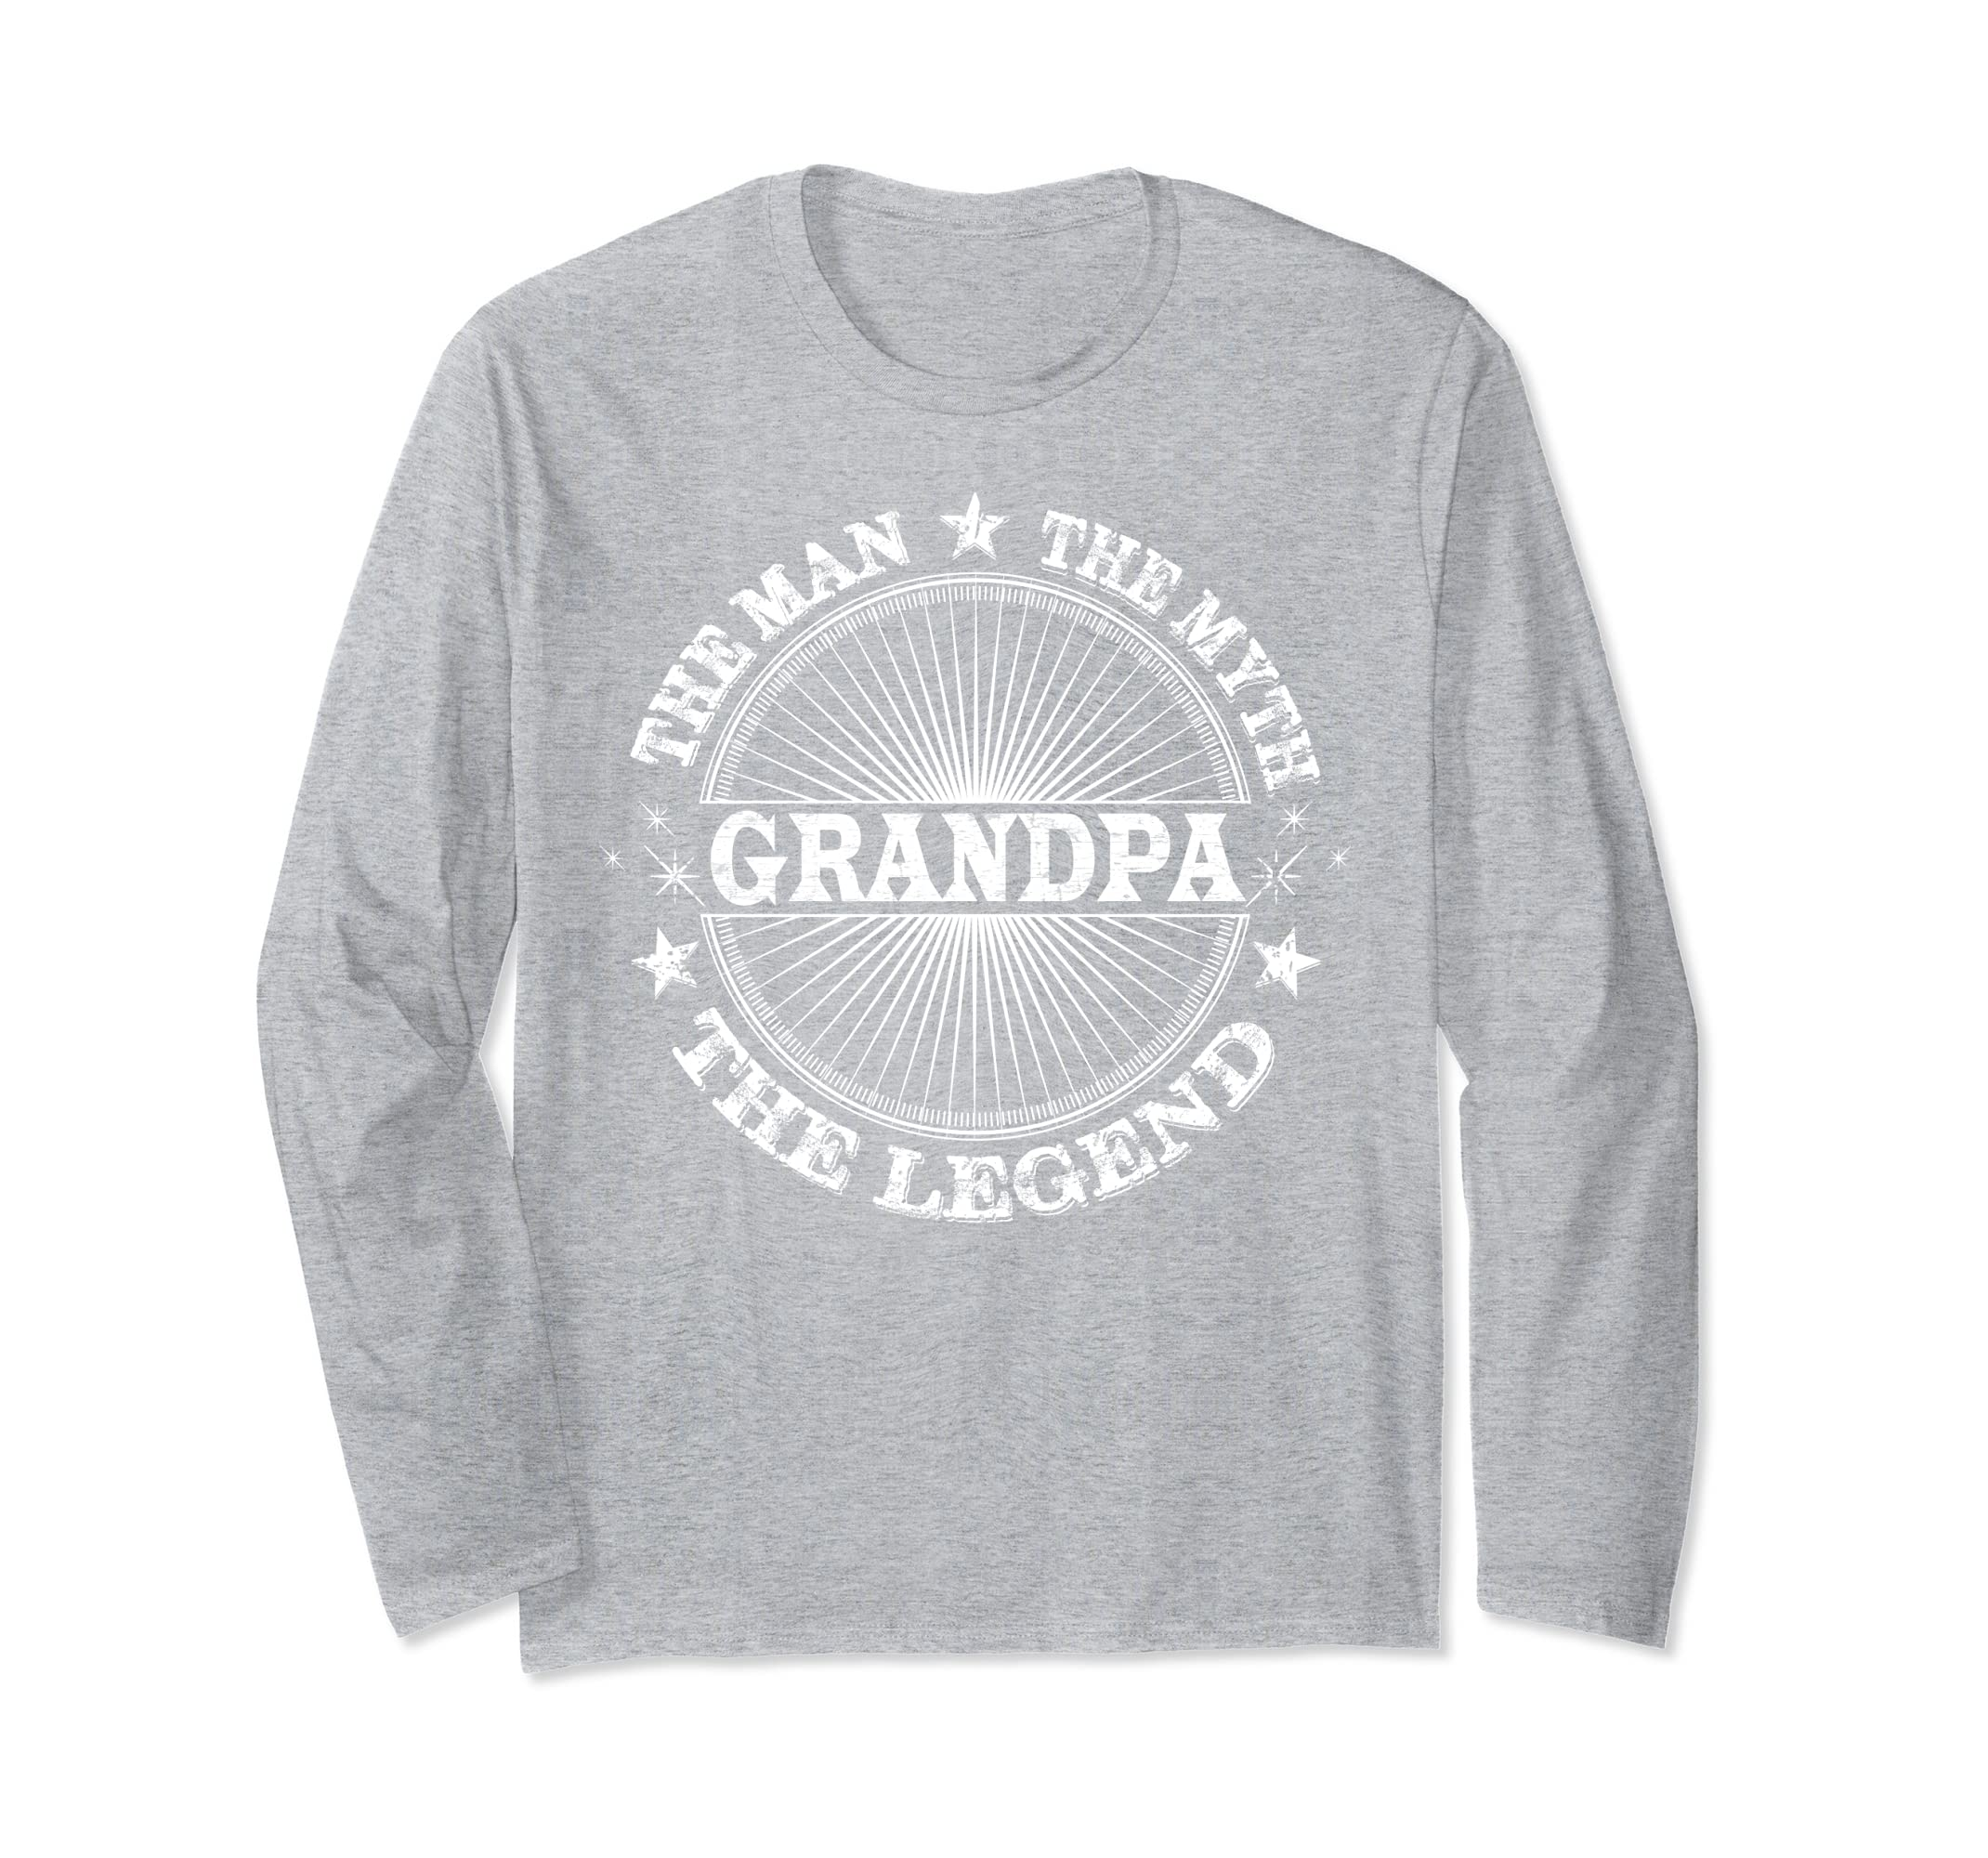 2018 The Man The Myth The Legend Tshirt For Your Grandpa-azvn